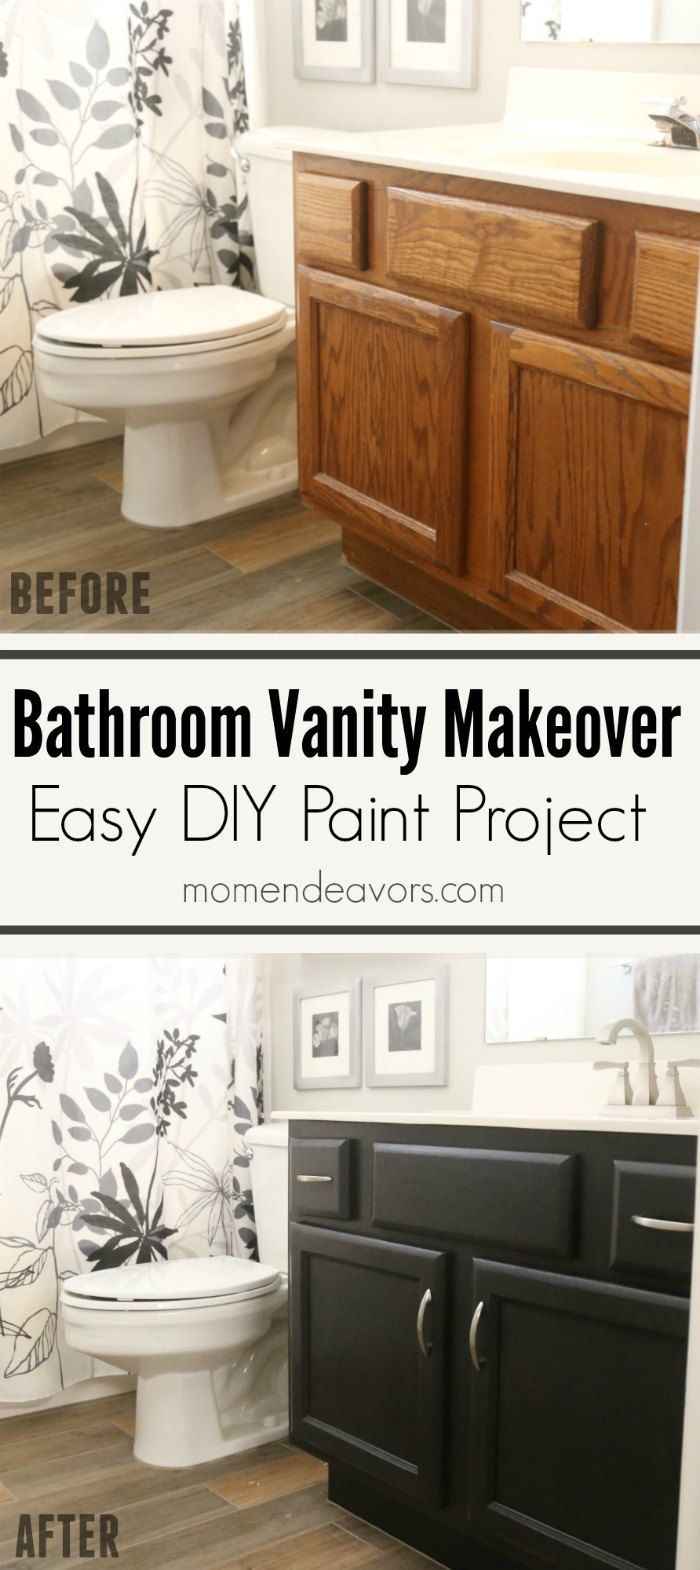 painted bathroom cabinet ideas pin by endeavors on diy home decor 19870